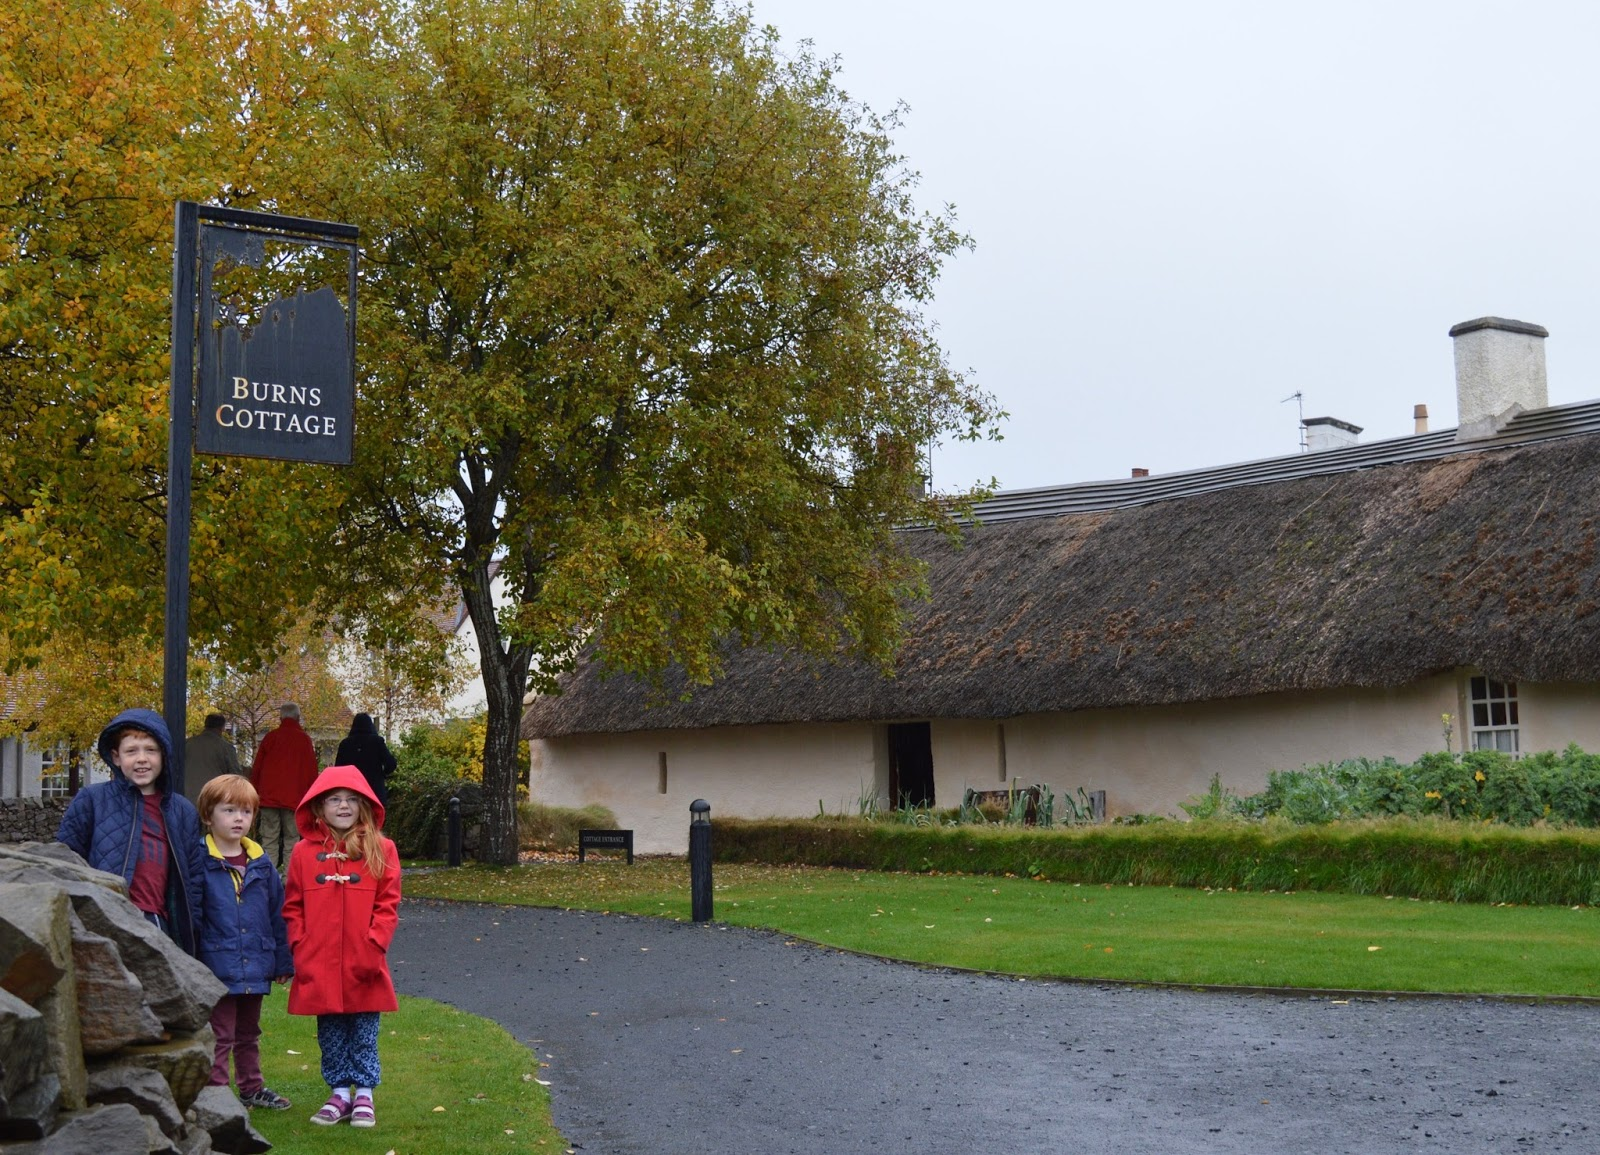 The Robert Burns Museum & Burns Cottage, Ayr | Prices, Location and What to Expect from your visit.  - outside Burns cottage